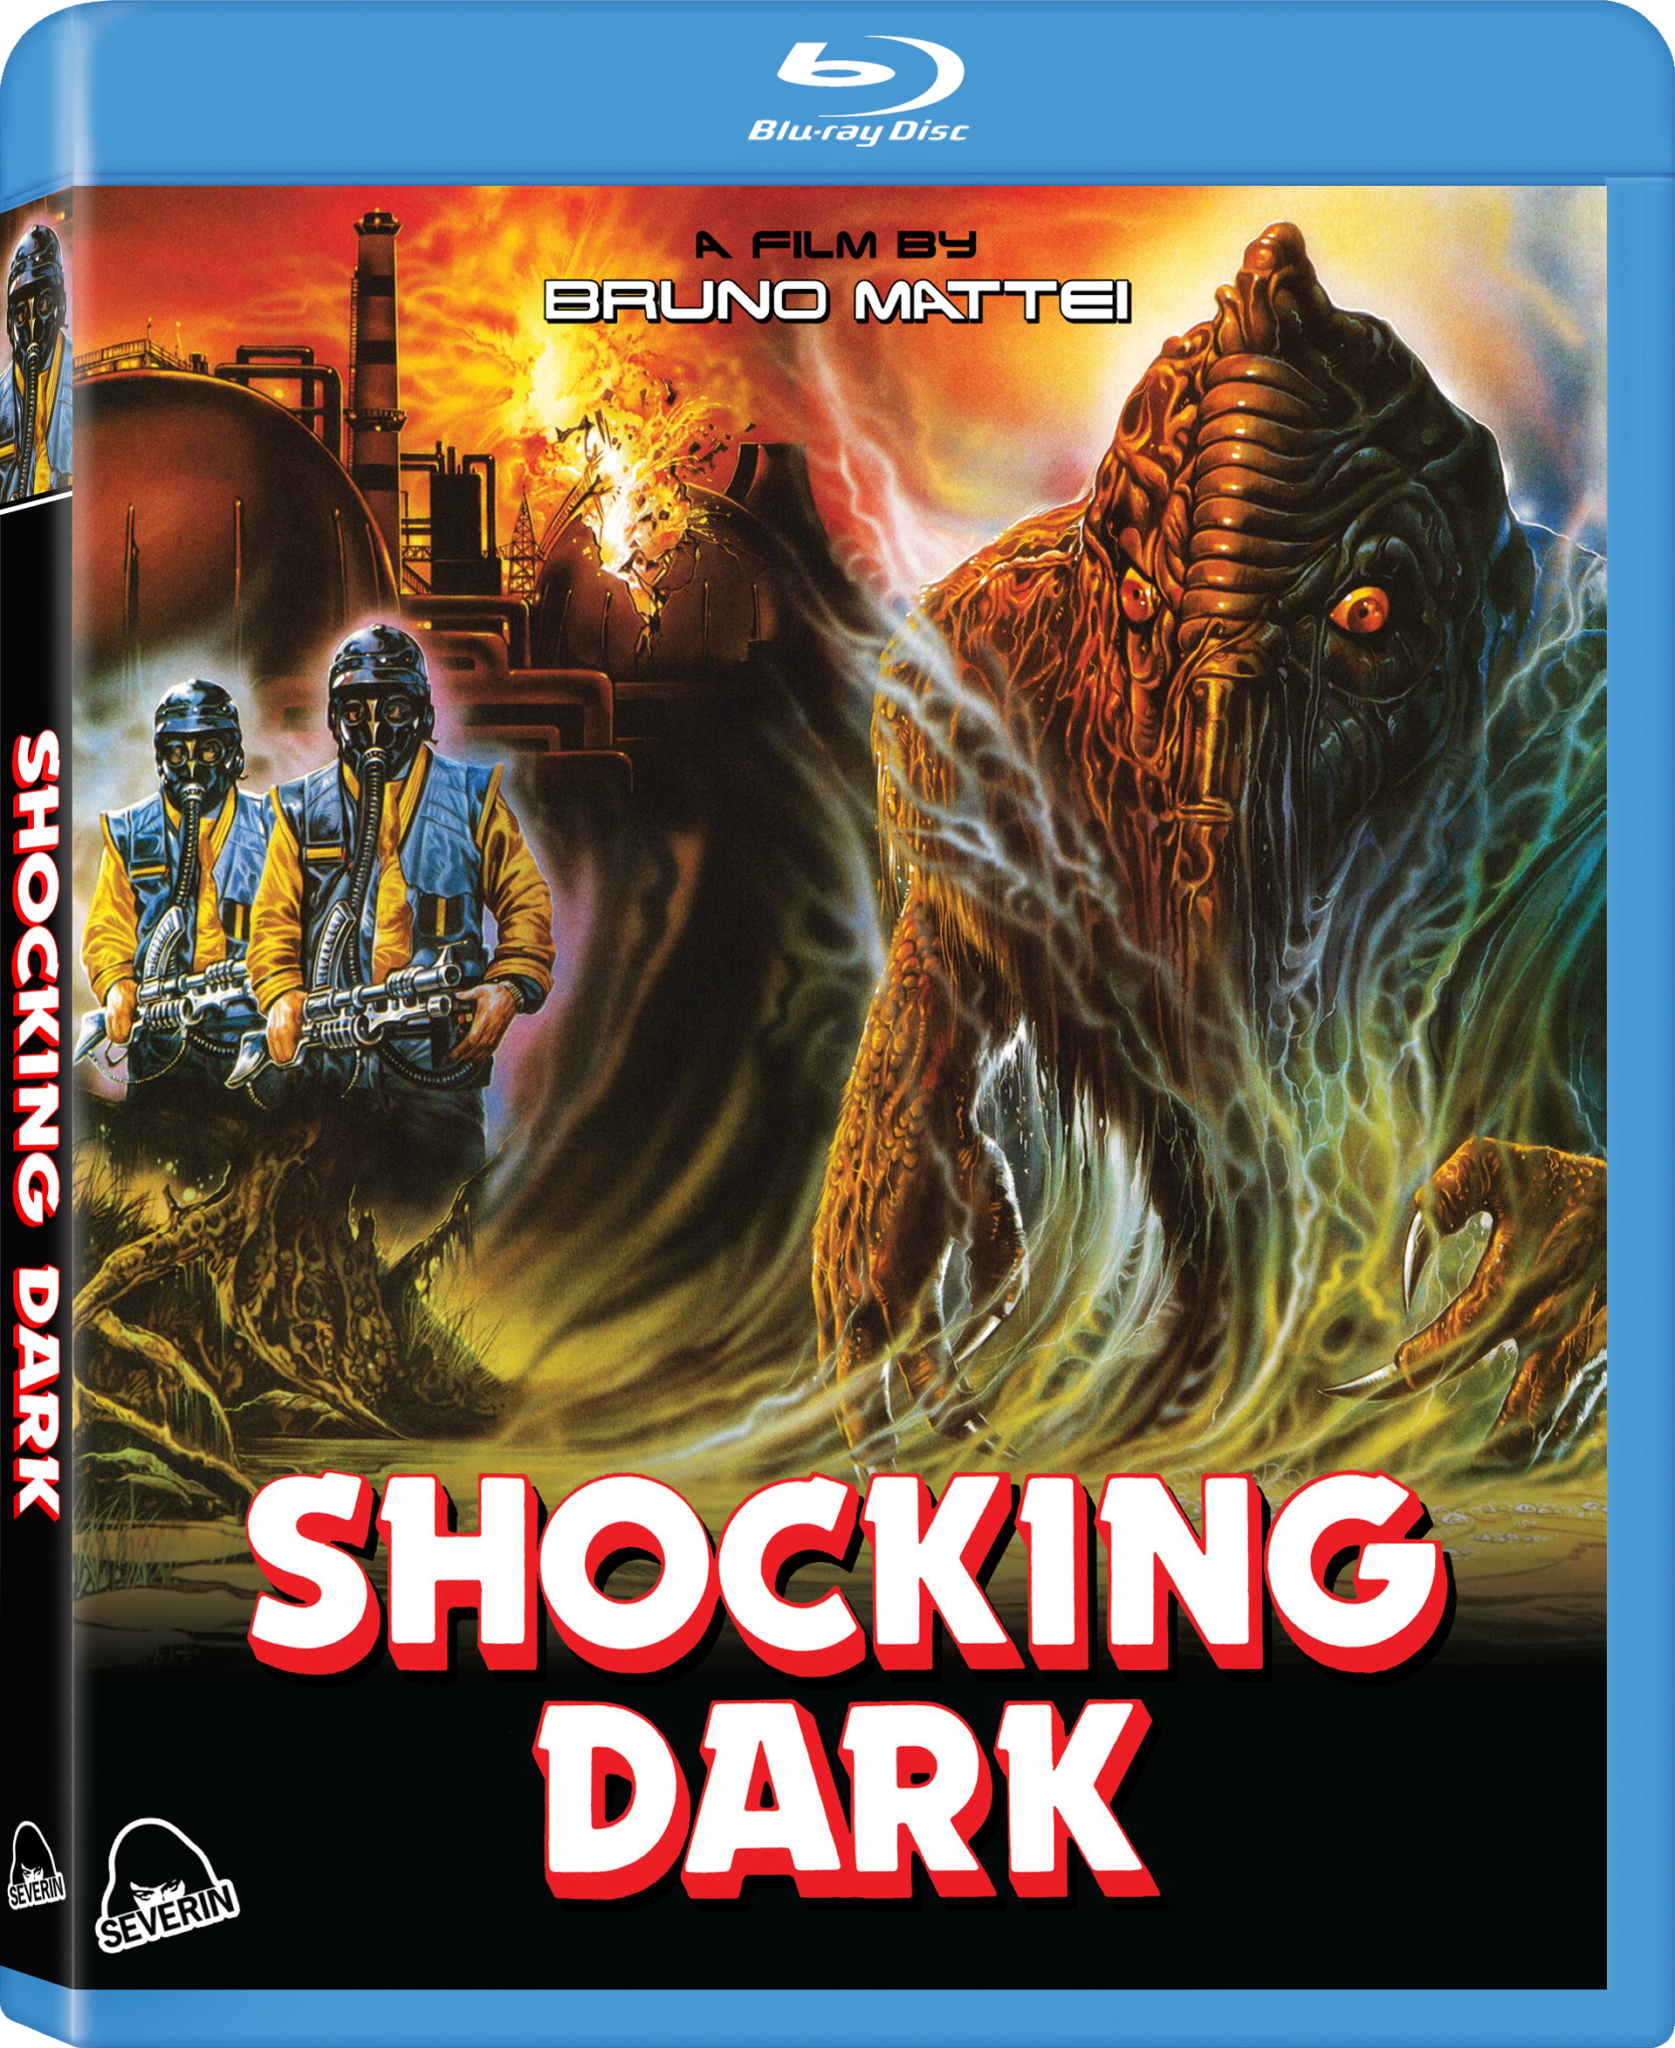 Shocking Dark Blu-ray Review #2 (Severin Films) - Cultsploitation